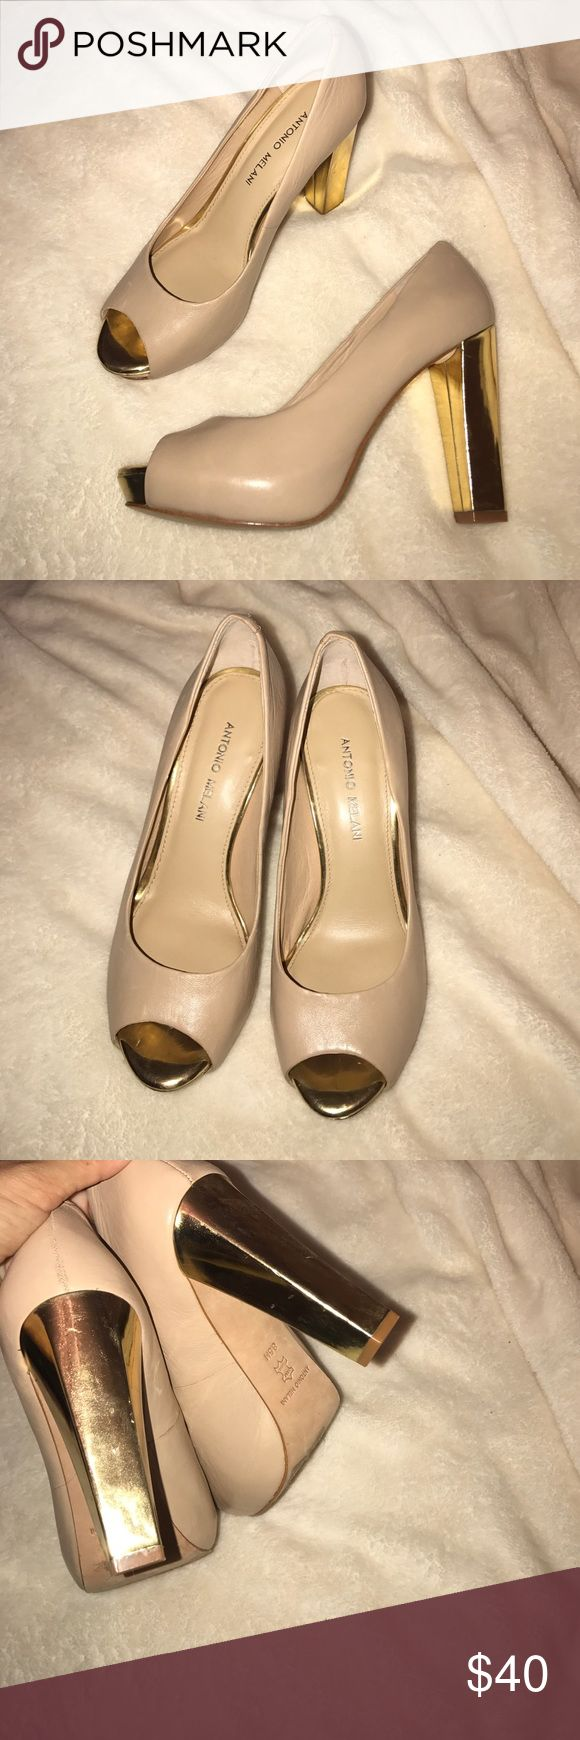 NWOT Antonio Melani nude + gold heels ✨ NWOT Antonio Melani nude leather heels with gold toe and heel. Peep toe. One inch platform & 4 inch heel (feels like 3 inch heels). EXTREMELY soft and comfortable. Worn for photos only. In great (not perfect) condition. ANTONIO MELANI Shoes